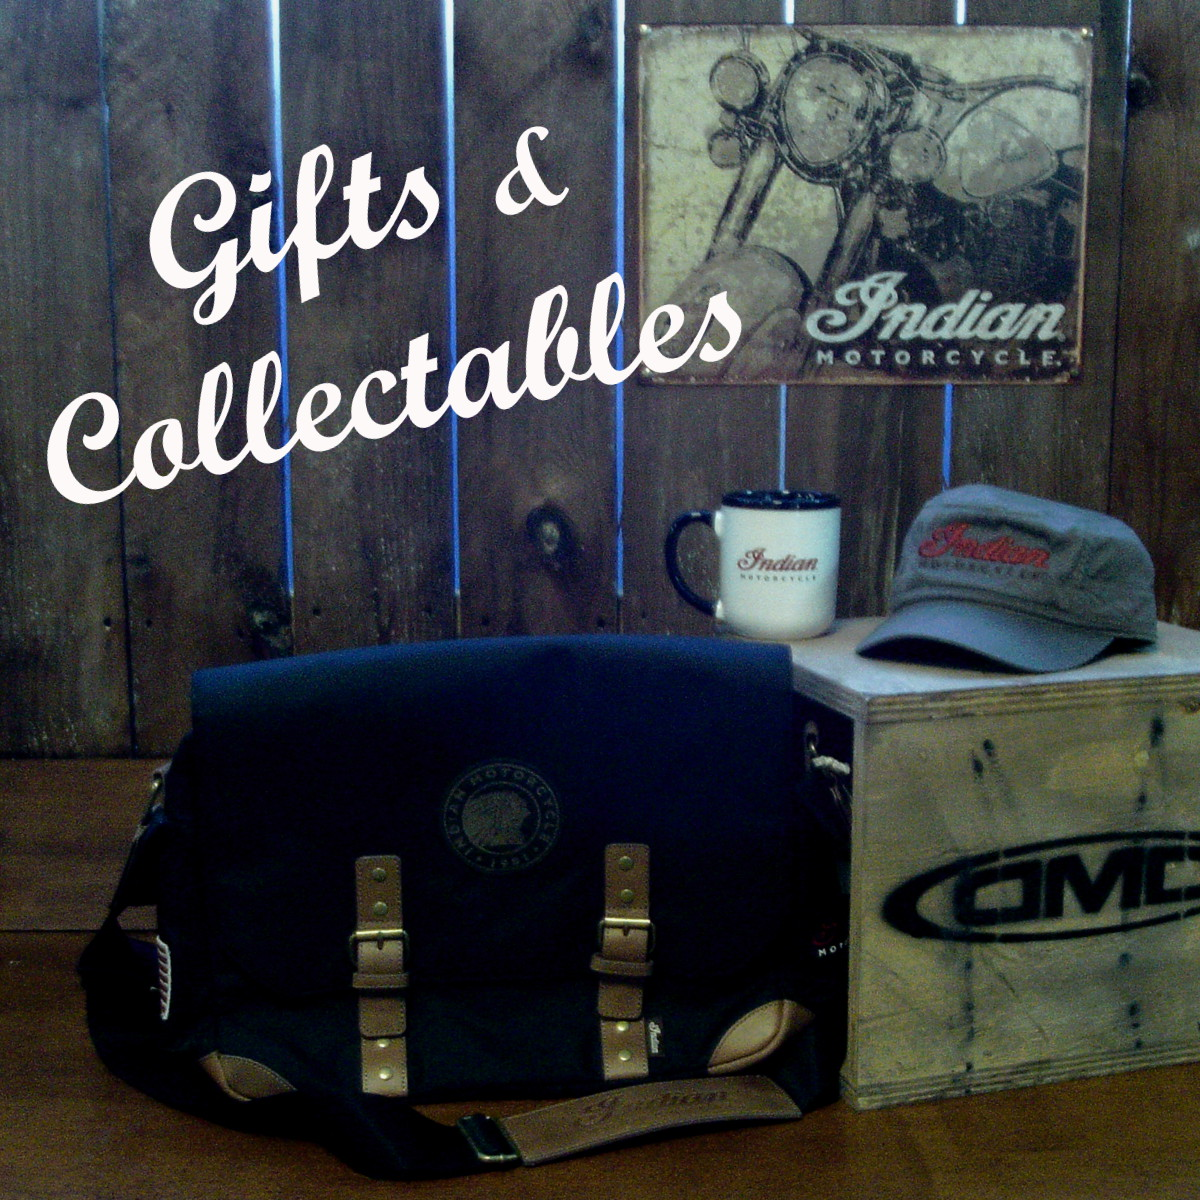 Gifts & Collectables